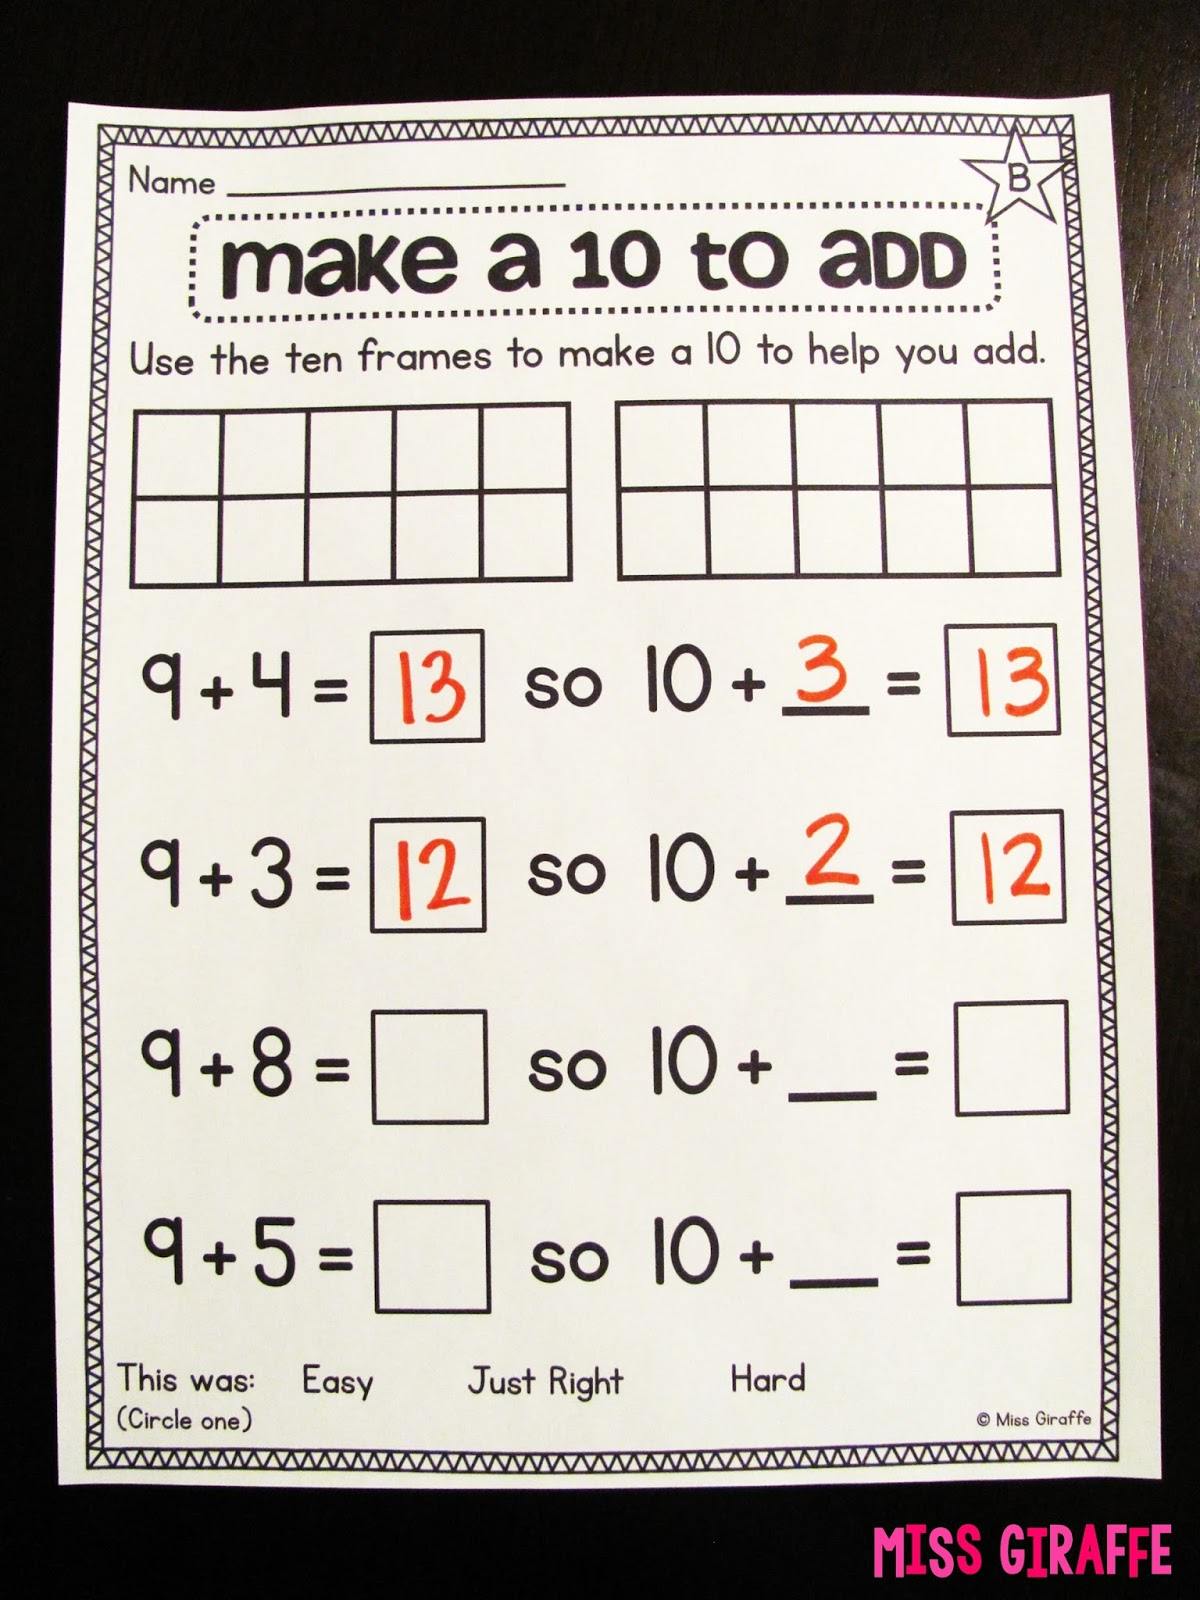 Make A Math Worksheet – Make a Math Worksheet